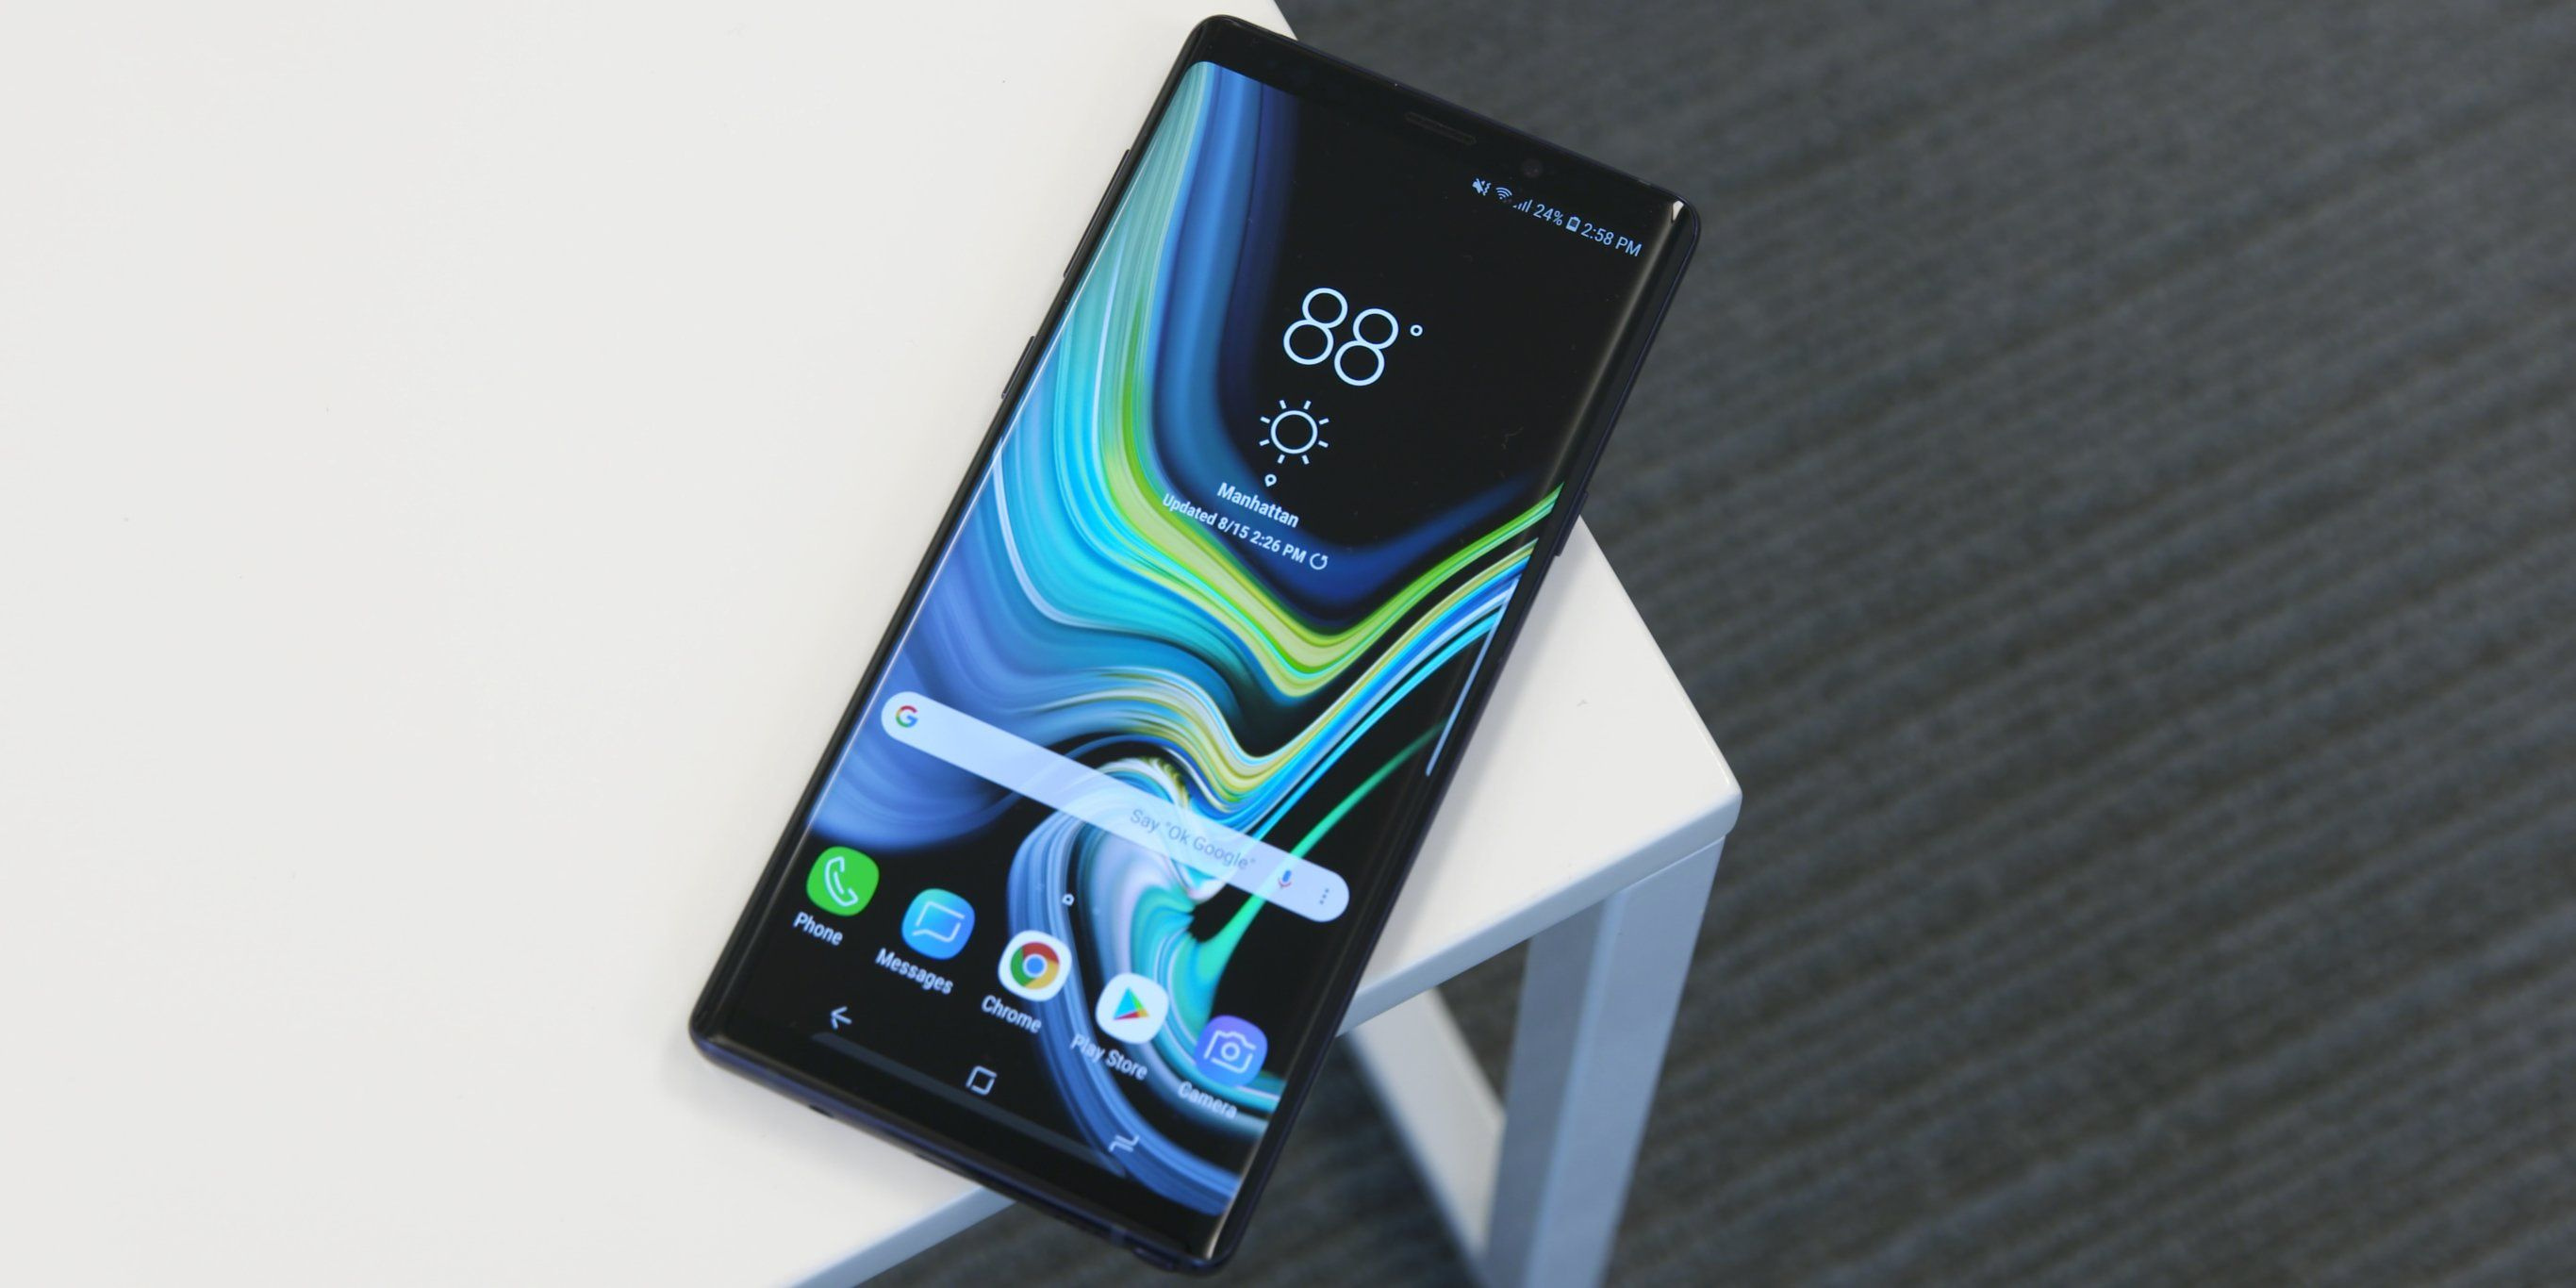 The Samsung Galaxy Note 9 is a $1,000 phone that's actually